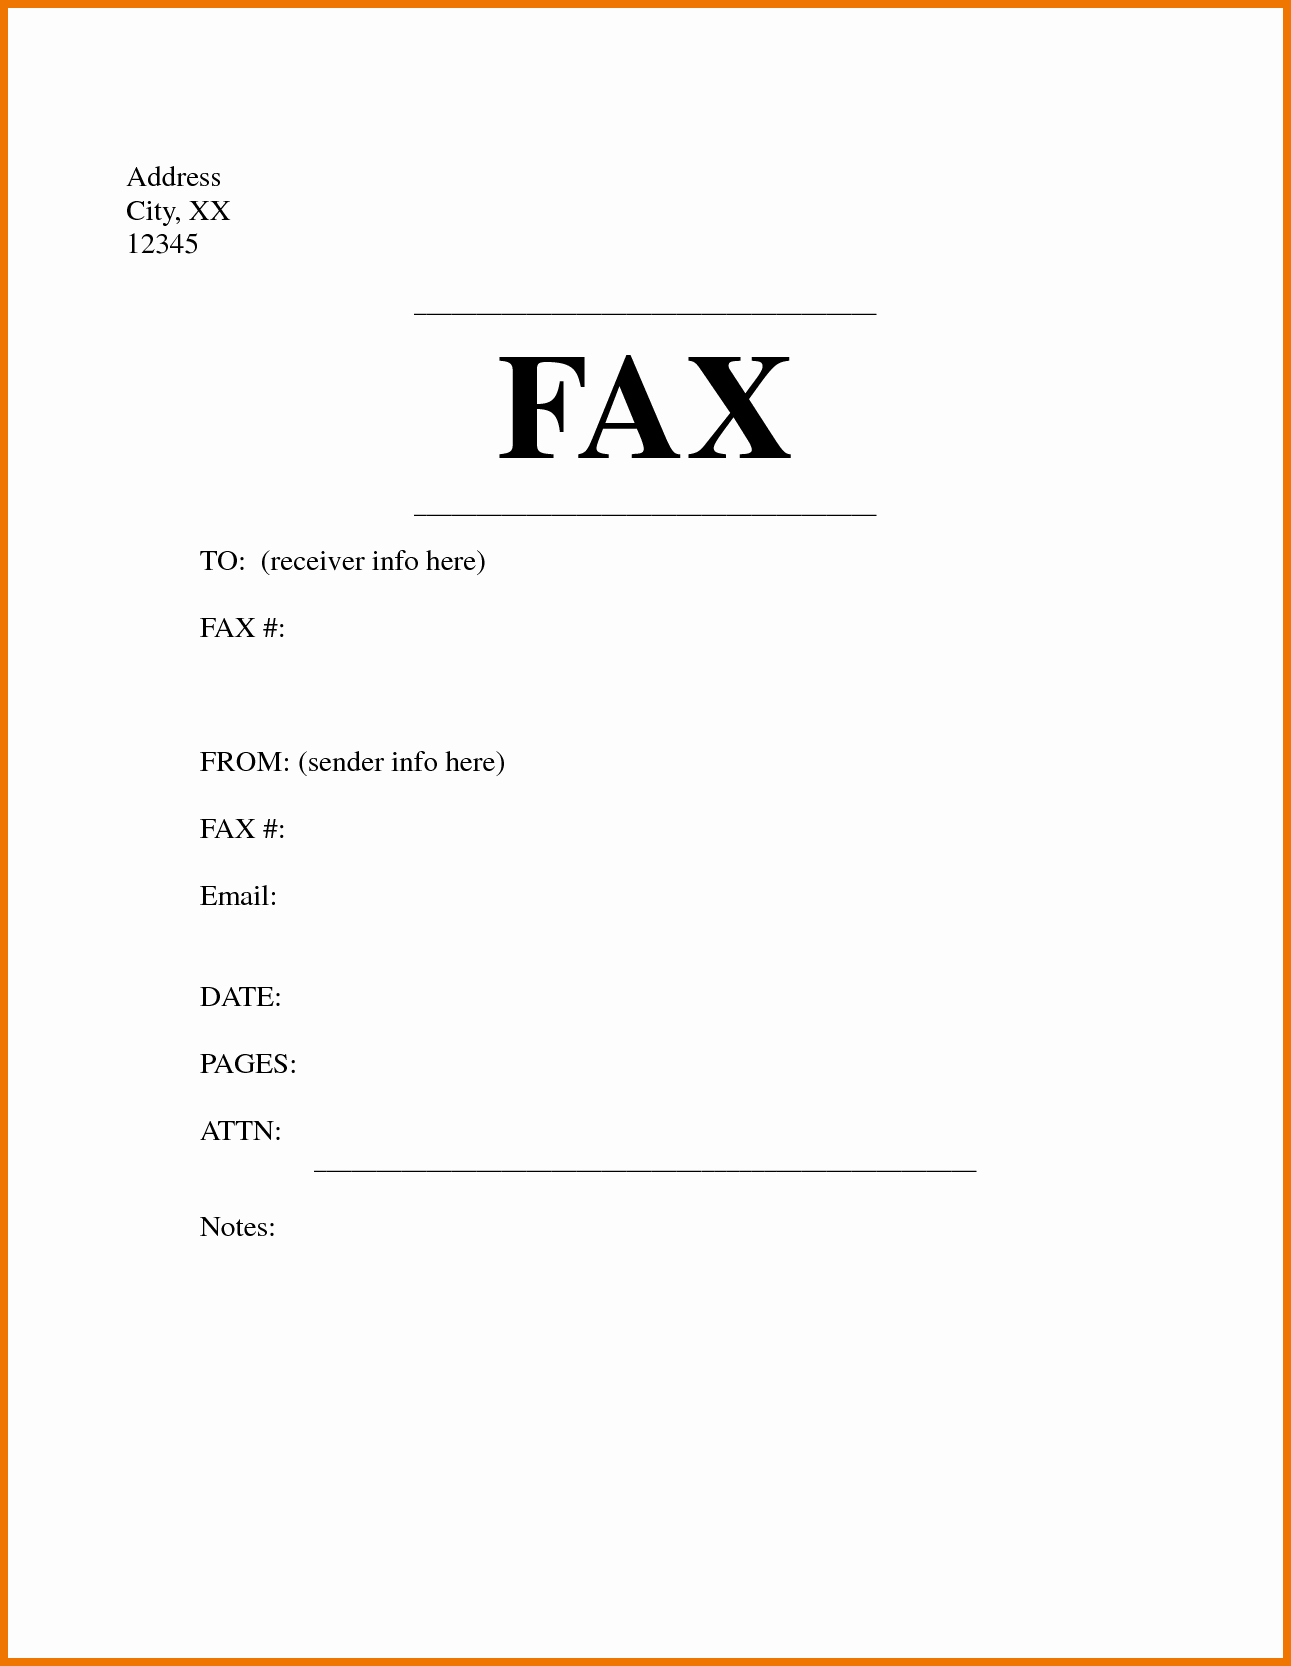 Fax Cover Page Lovely How to Prepare A Fax Cover Sheet